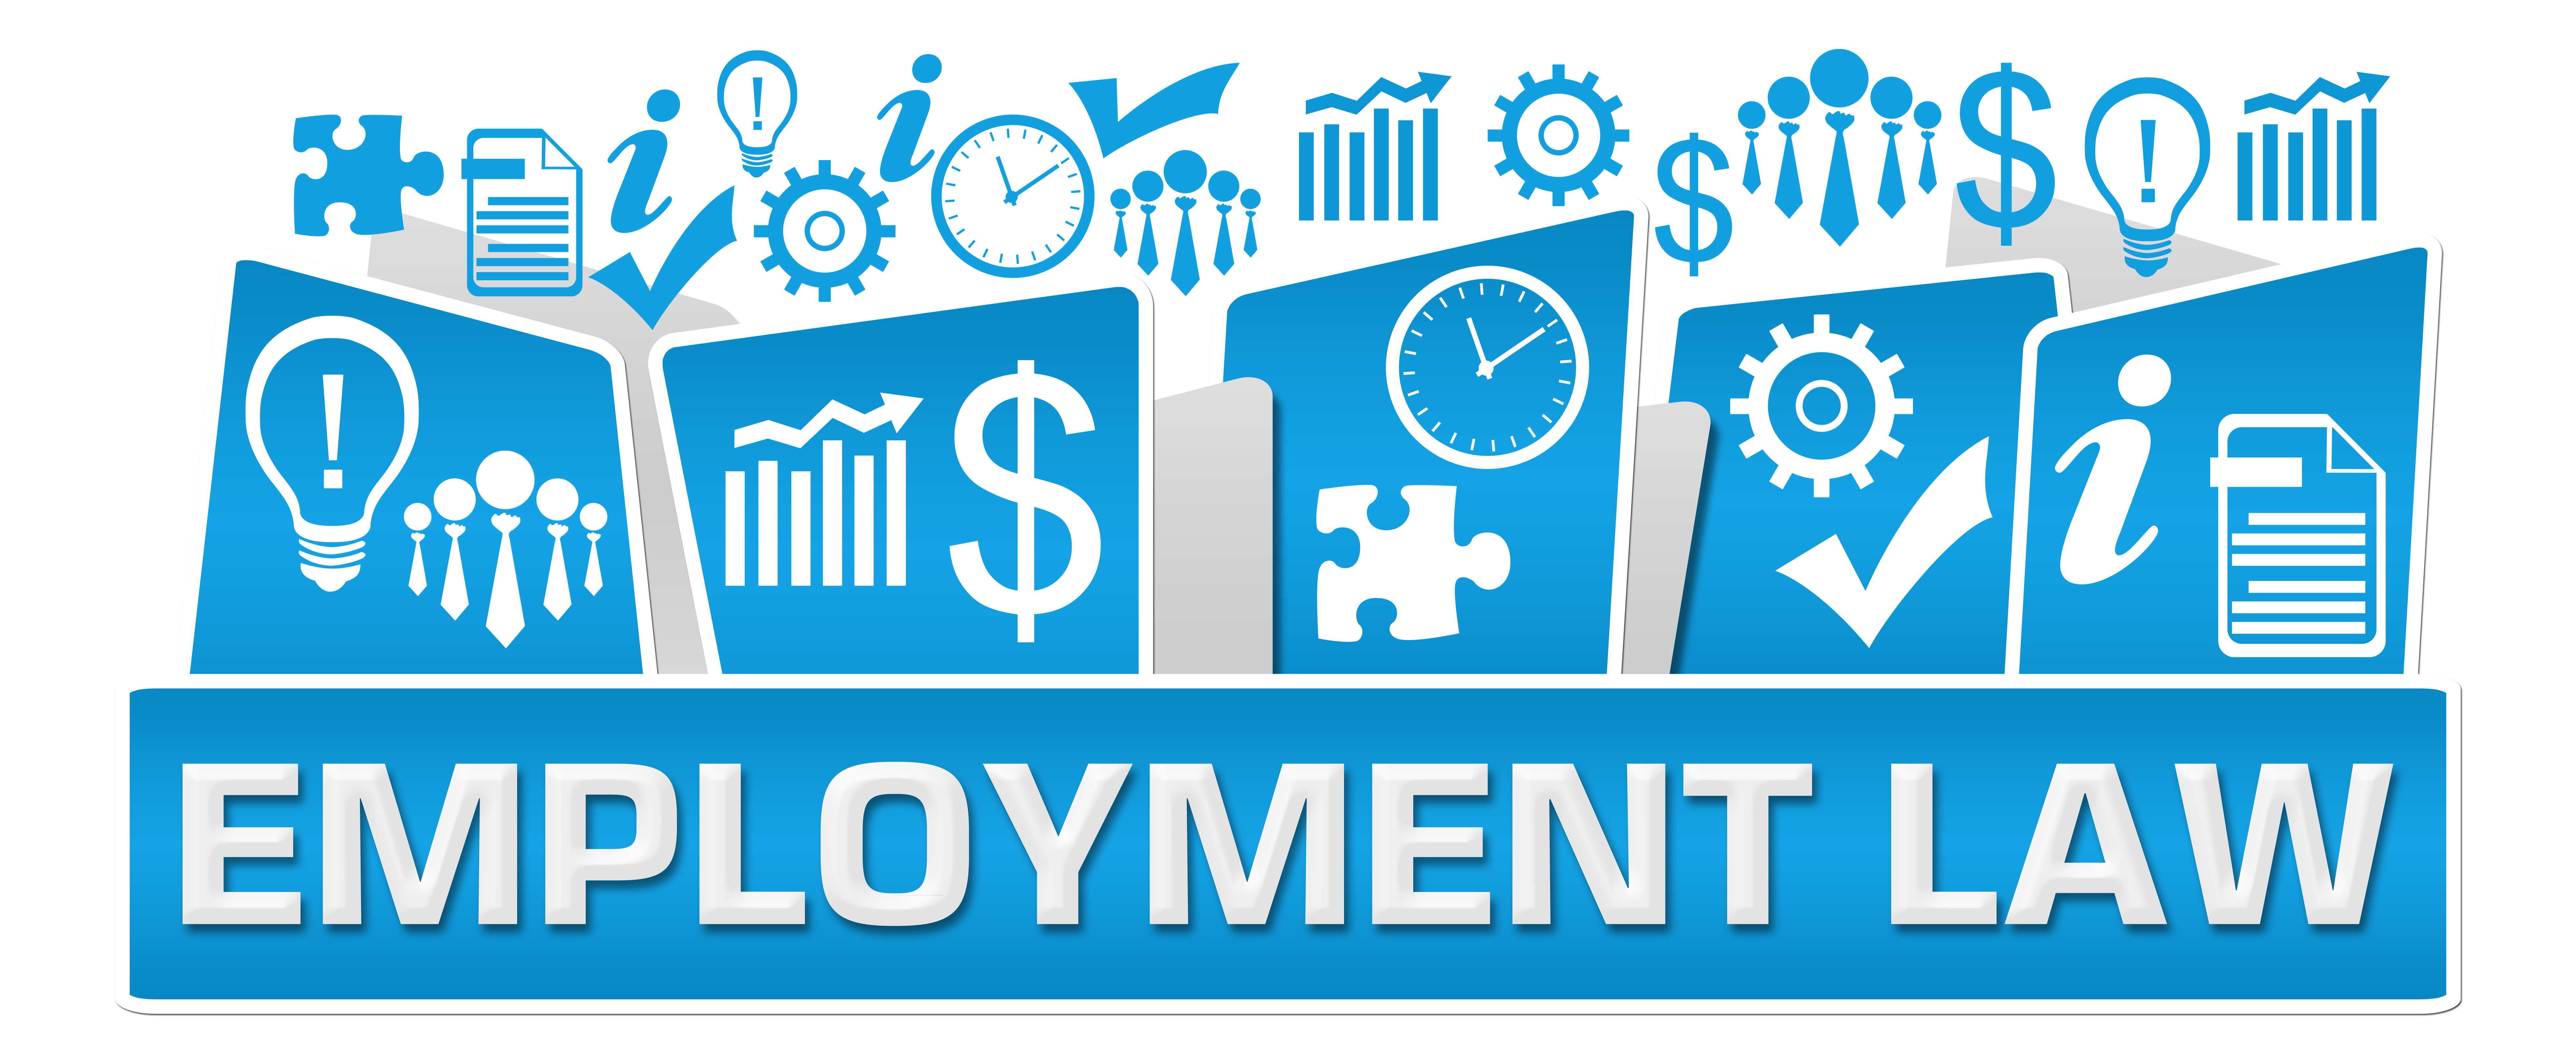 Employment Law Business Symbols On Top Blue